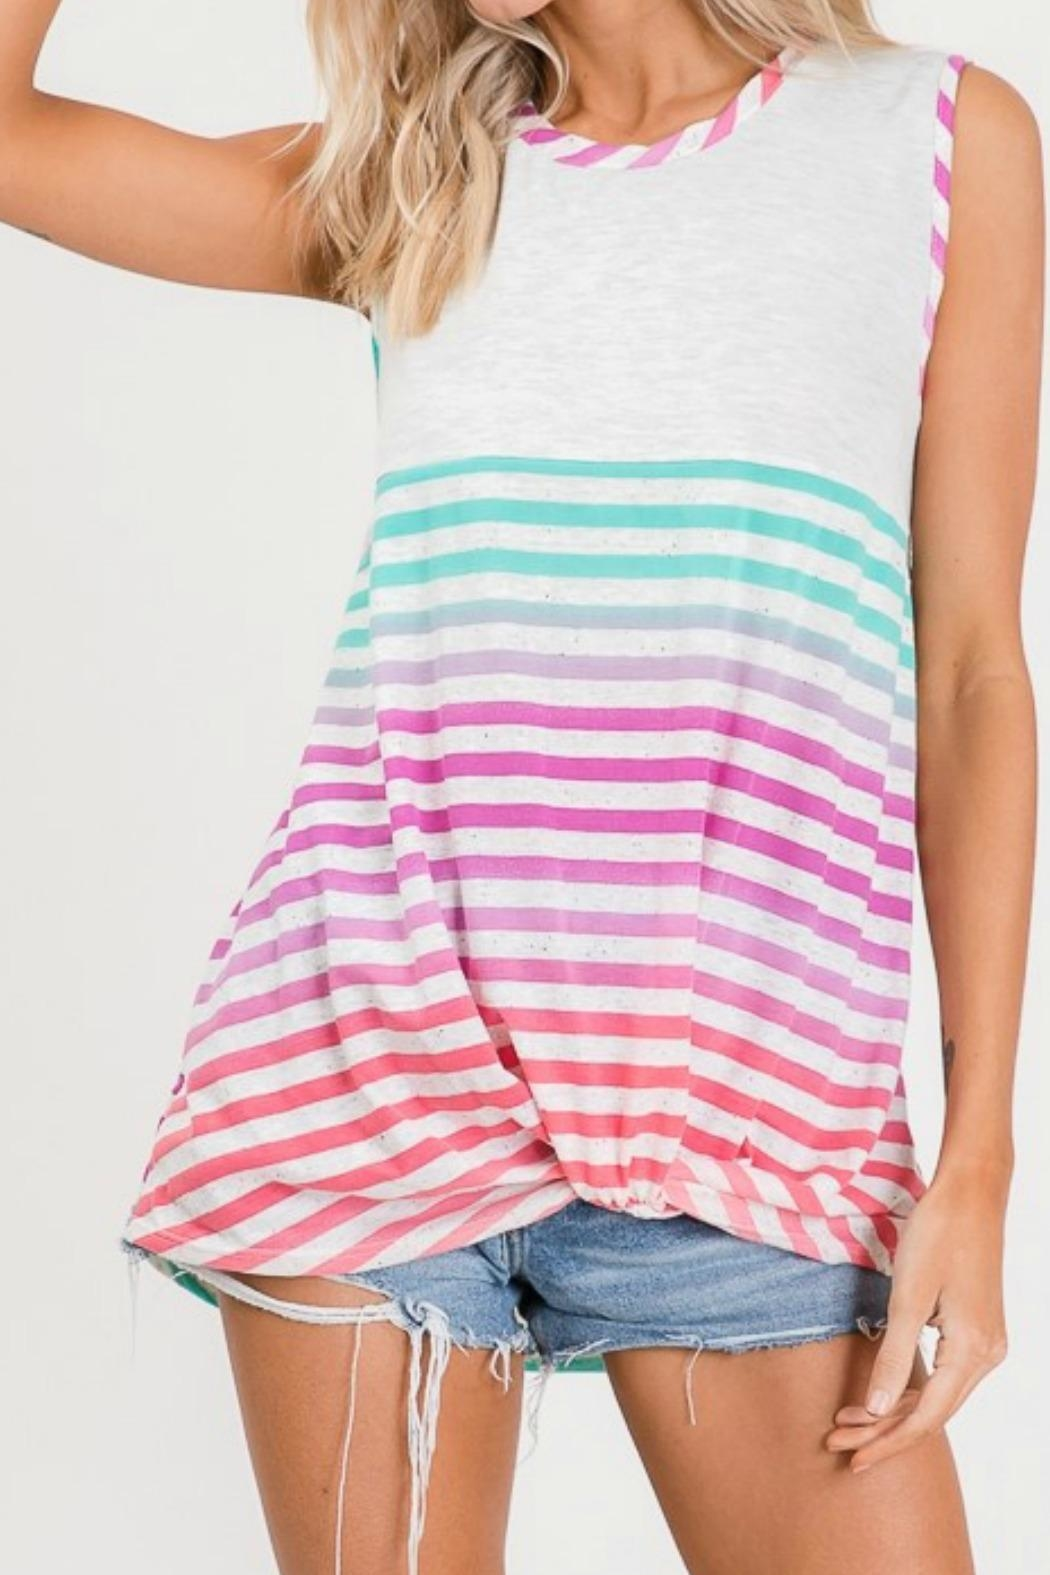 Lovely Melody Multicolor Striped Top - Main Image